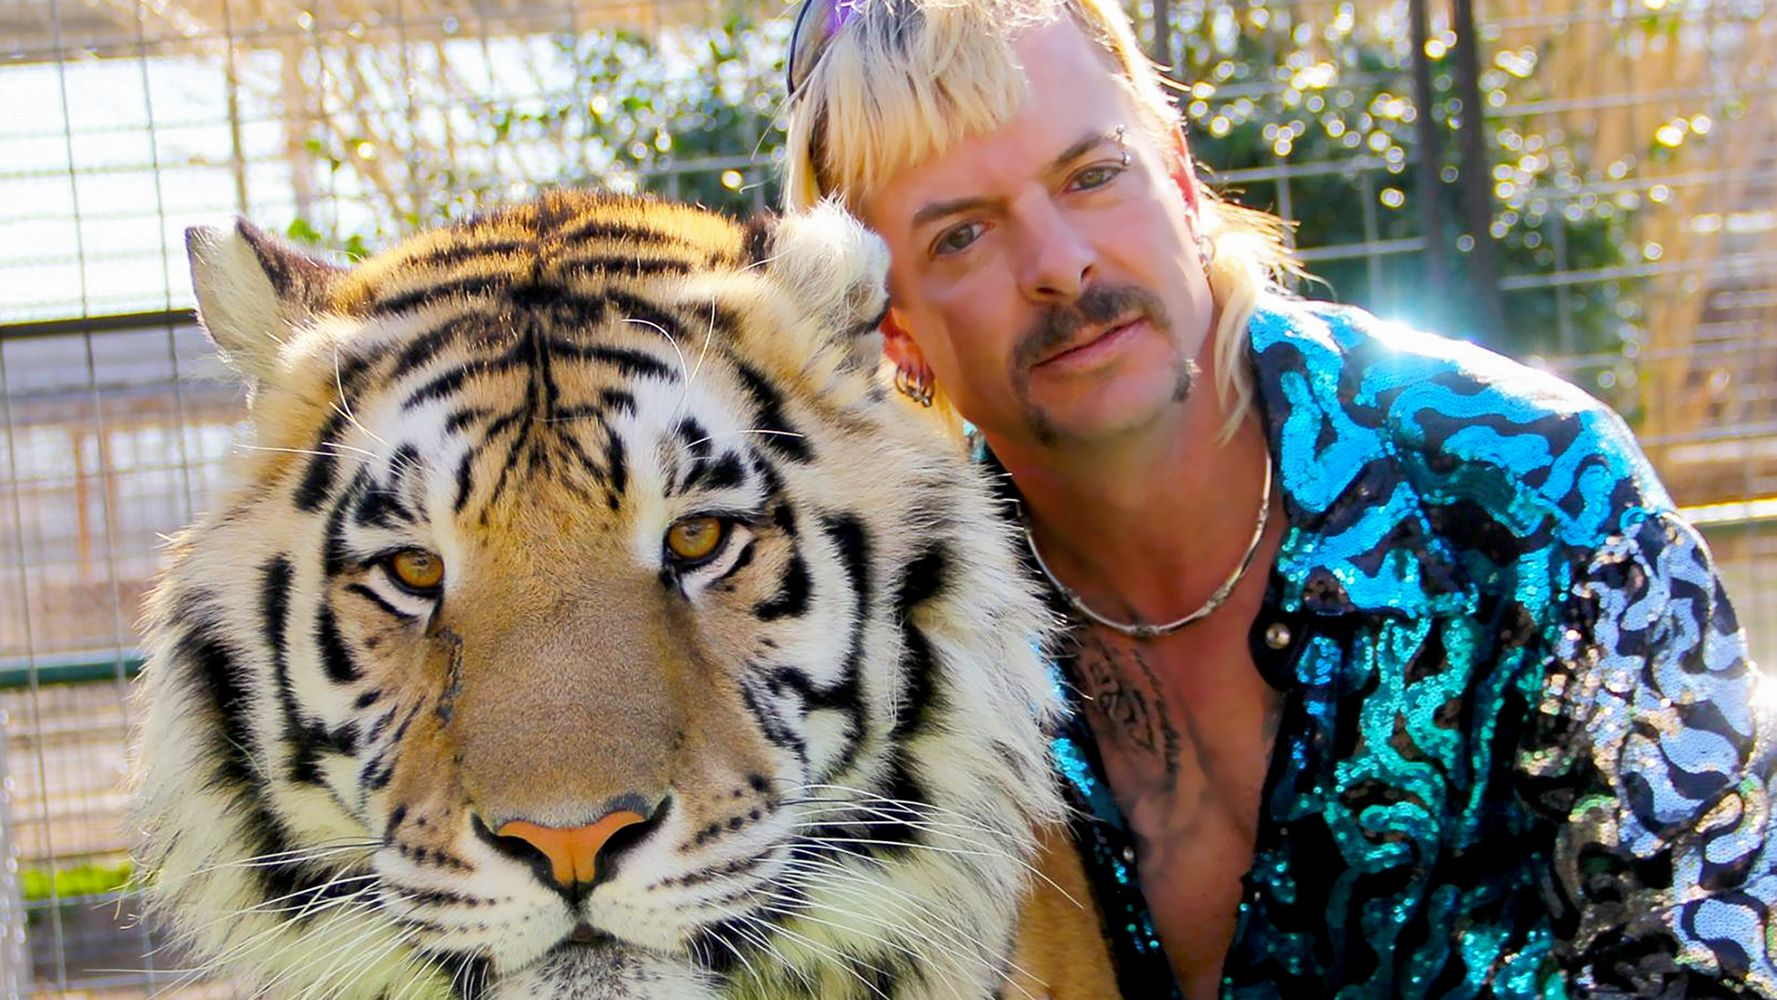 Joe Exotic promises to 'make a deal with the devil' in the trailer 'Tiger King 2'